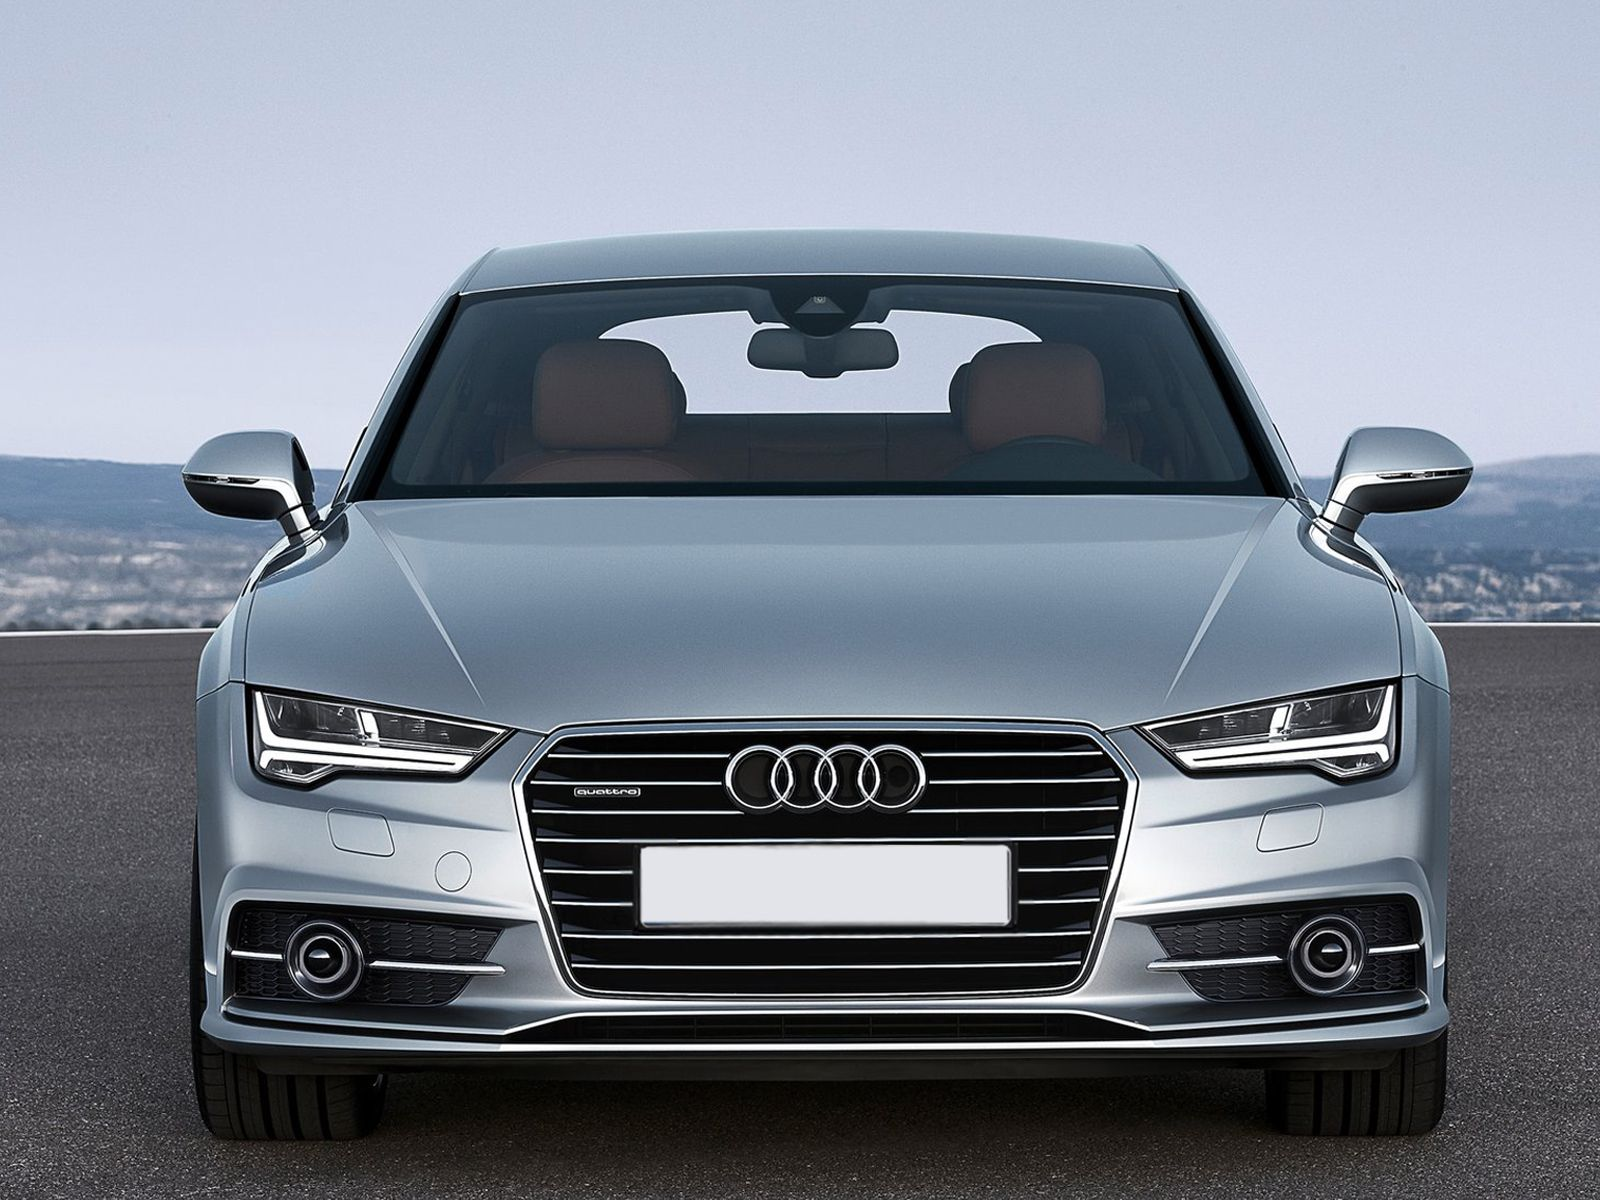 Get your Audi A7 Sportsback repaired at our technically